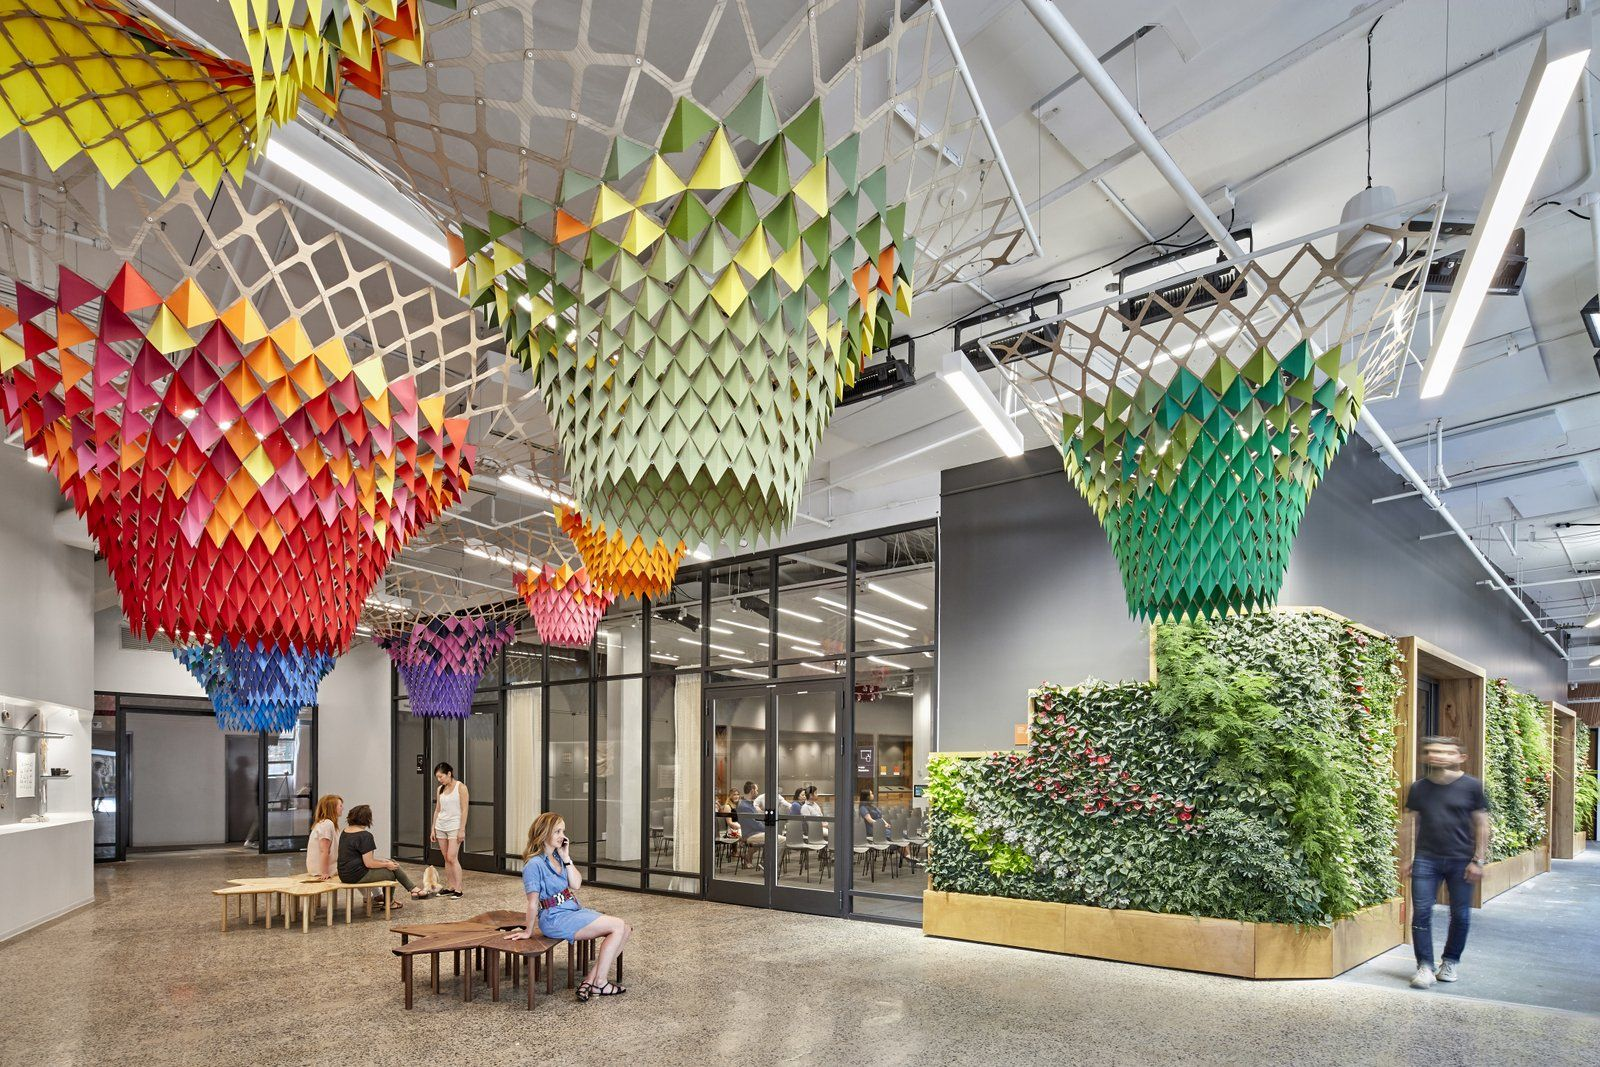 We Love The Green Wall At Etsy Offices In New York City